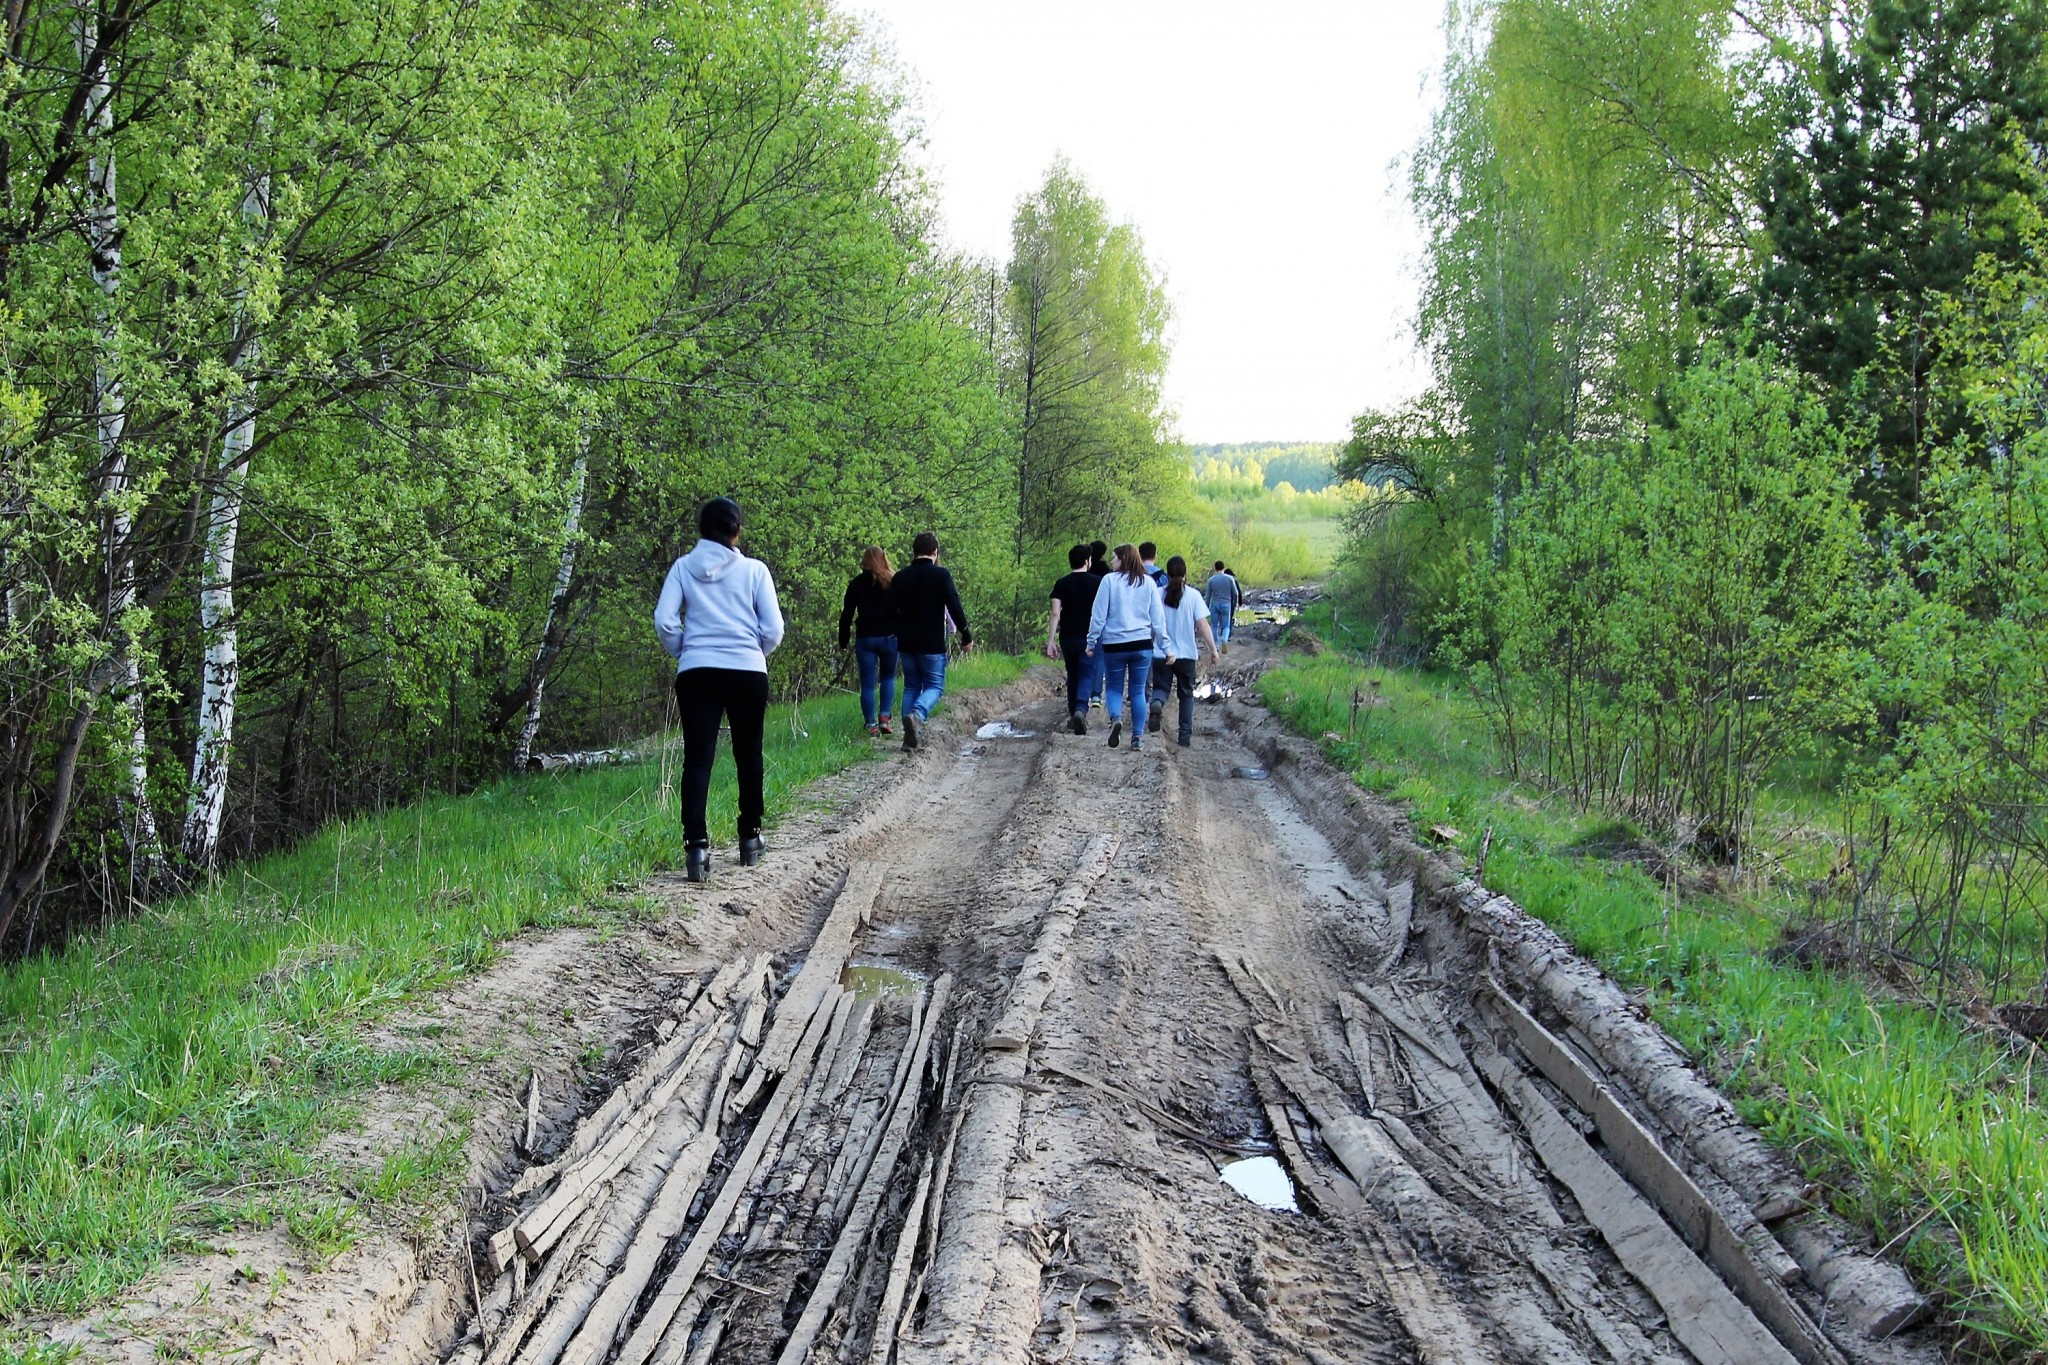 After the payloads landed, the students tracked them using GPS to a forested expanse in the Ivanovo Region. Nearby road conditions prevented the vans from driving the whole distance, so the teams walked the rest of the way by foot. Photo: Skoltech.